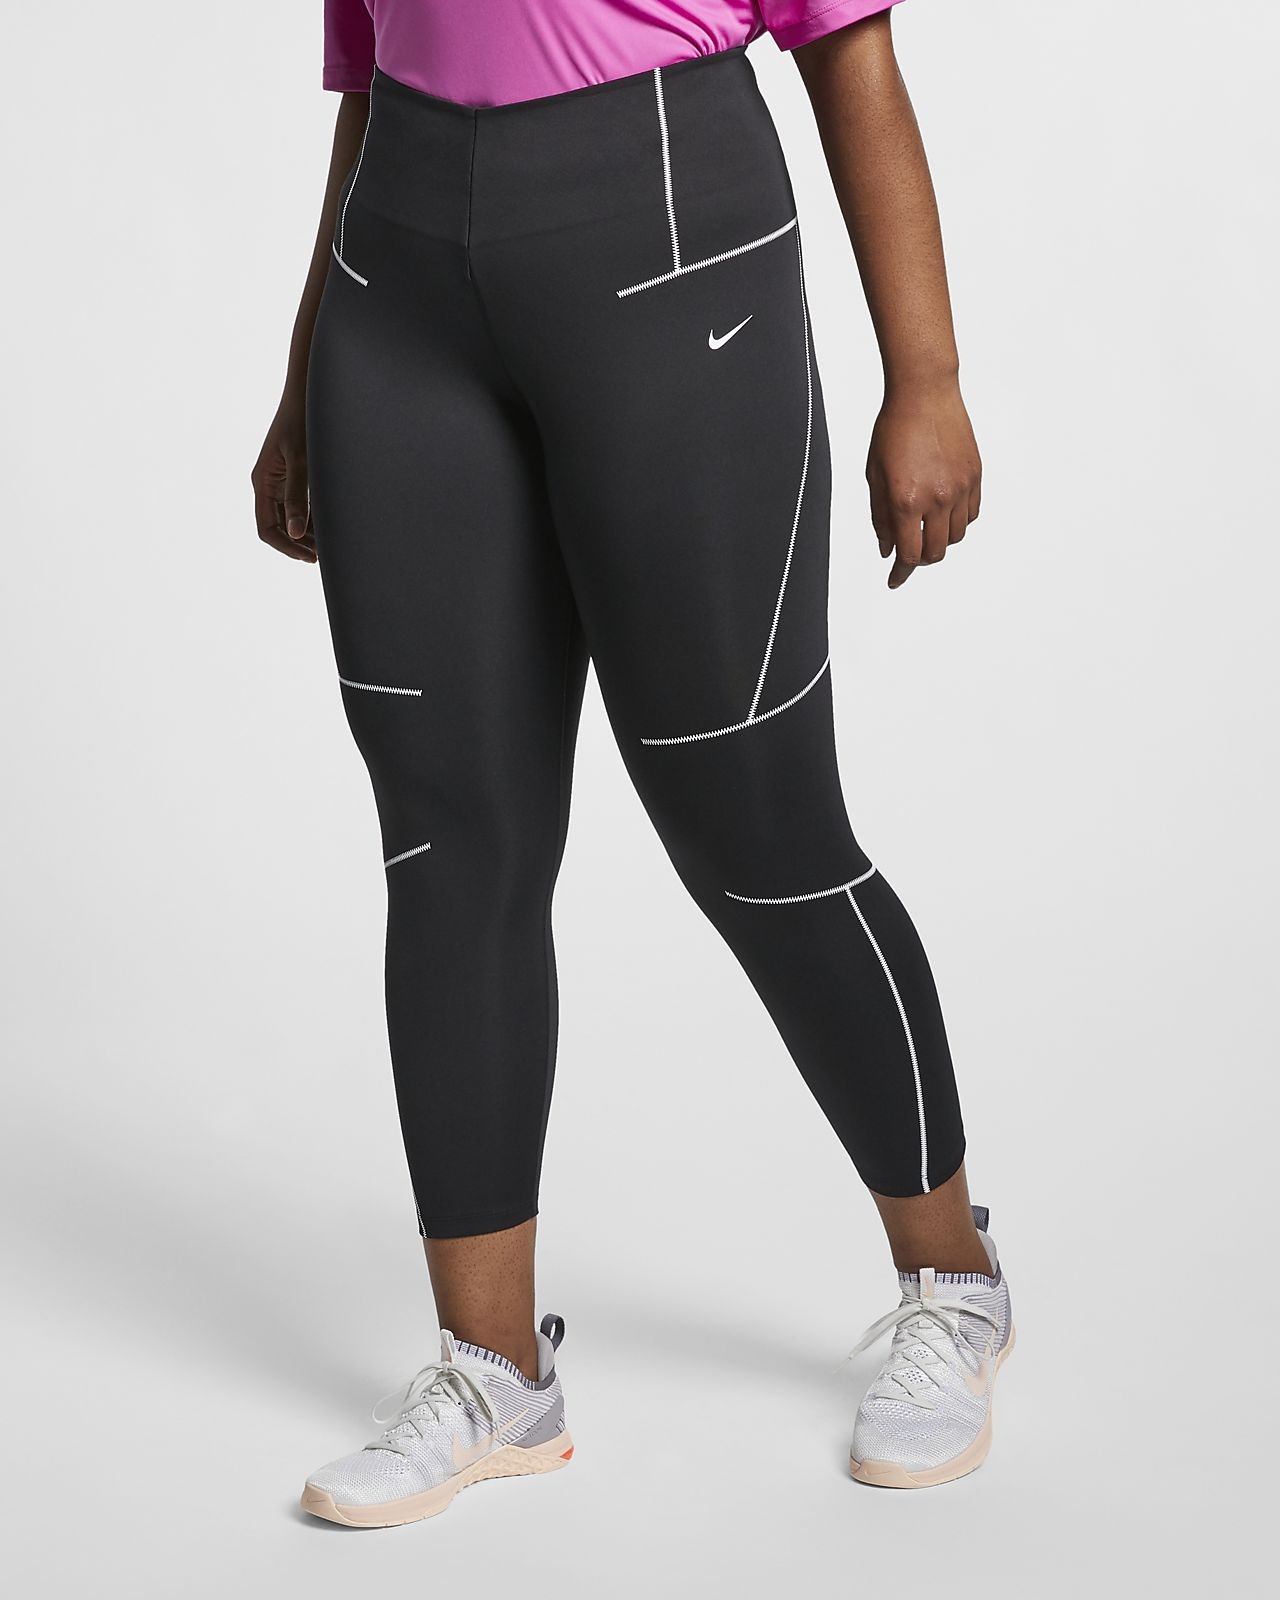 d19301d2a775f Nike Women's Training Tights (Plus Size). Nike.com AE